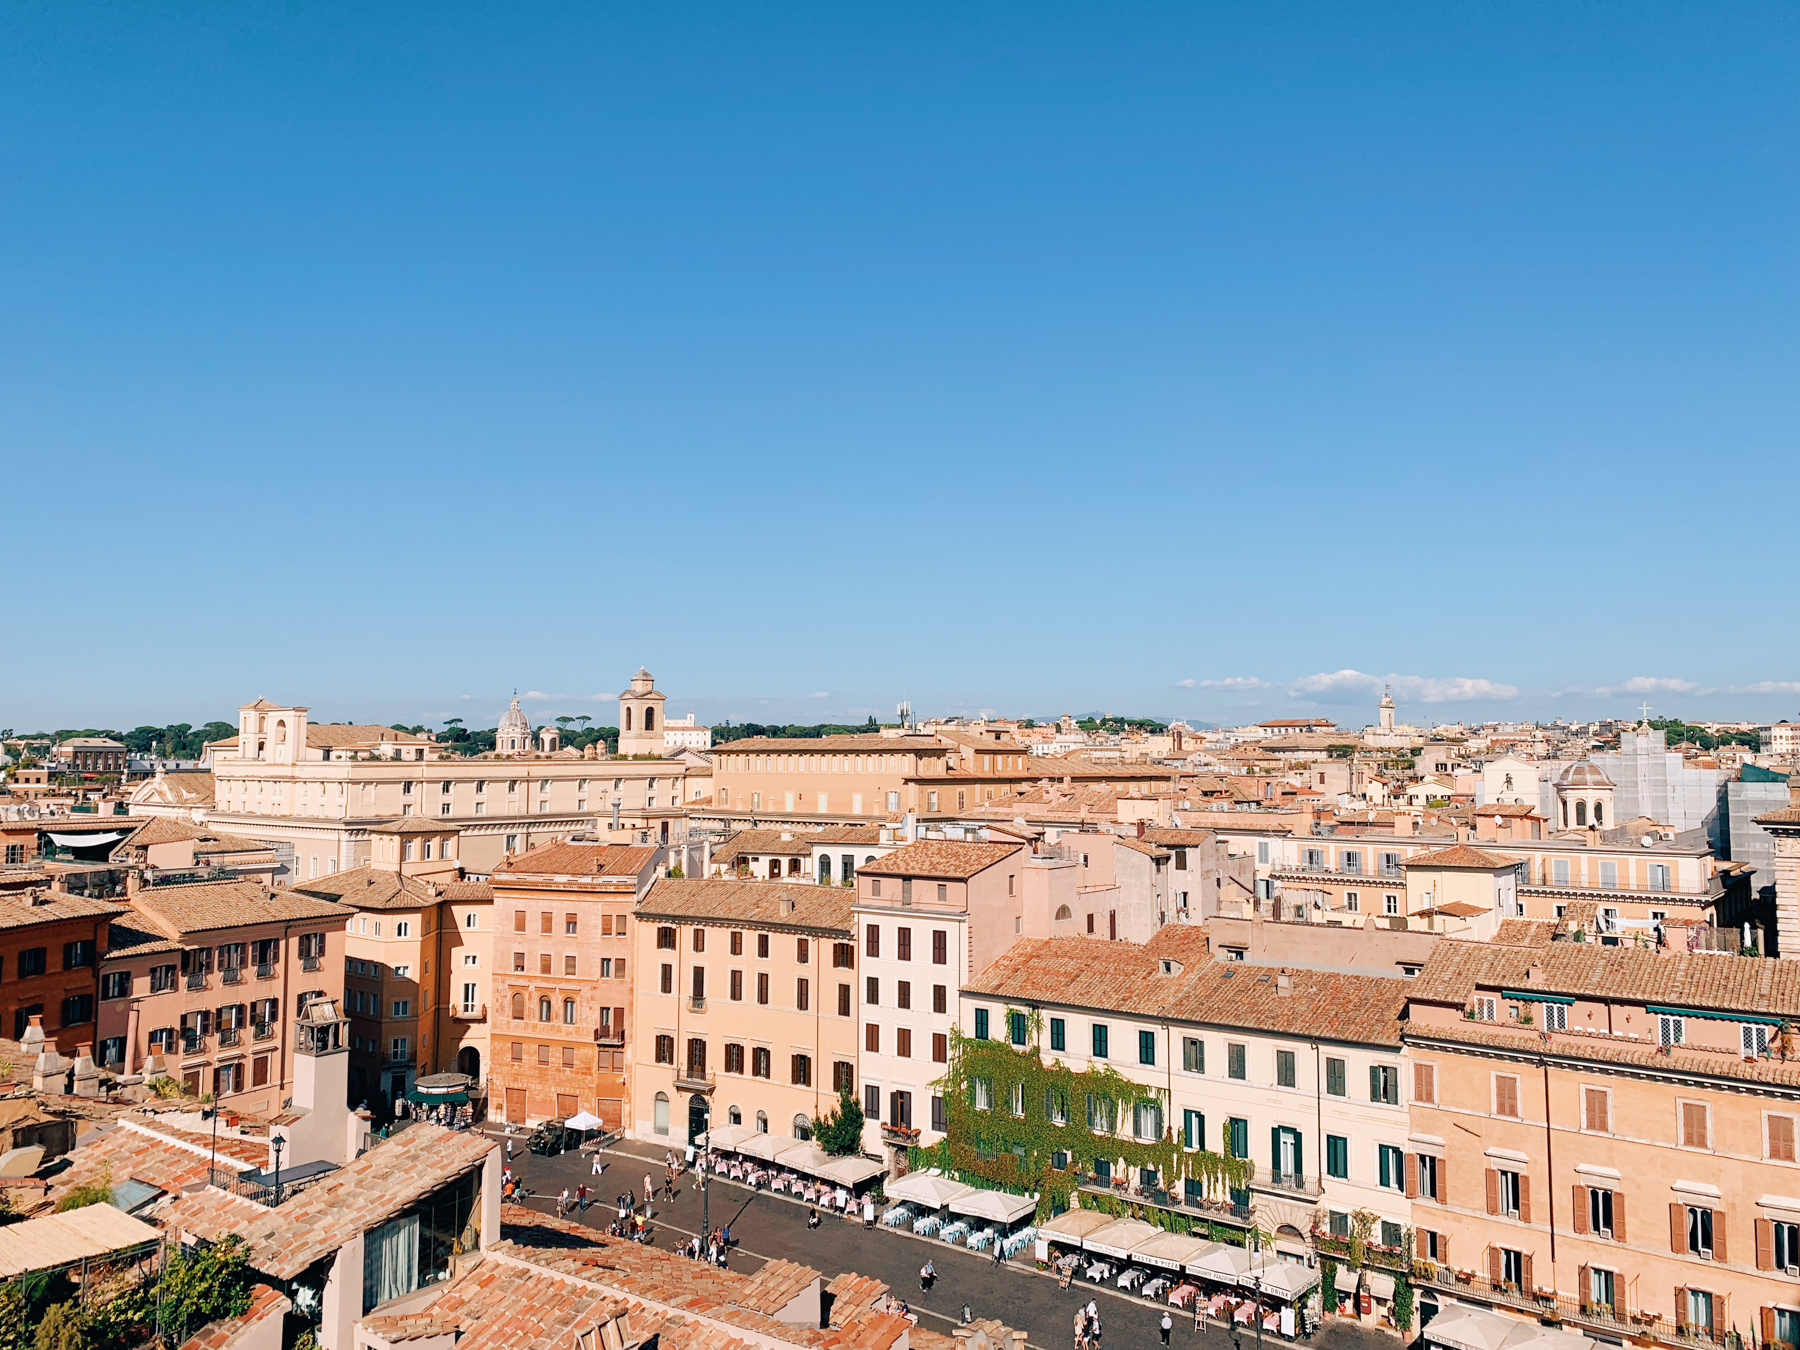 The view of Piazza Navona from our rooftop drinks at Terrazza Borromini.